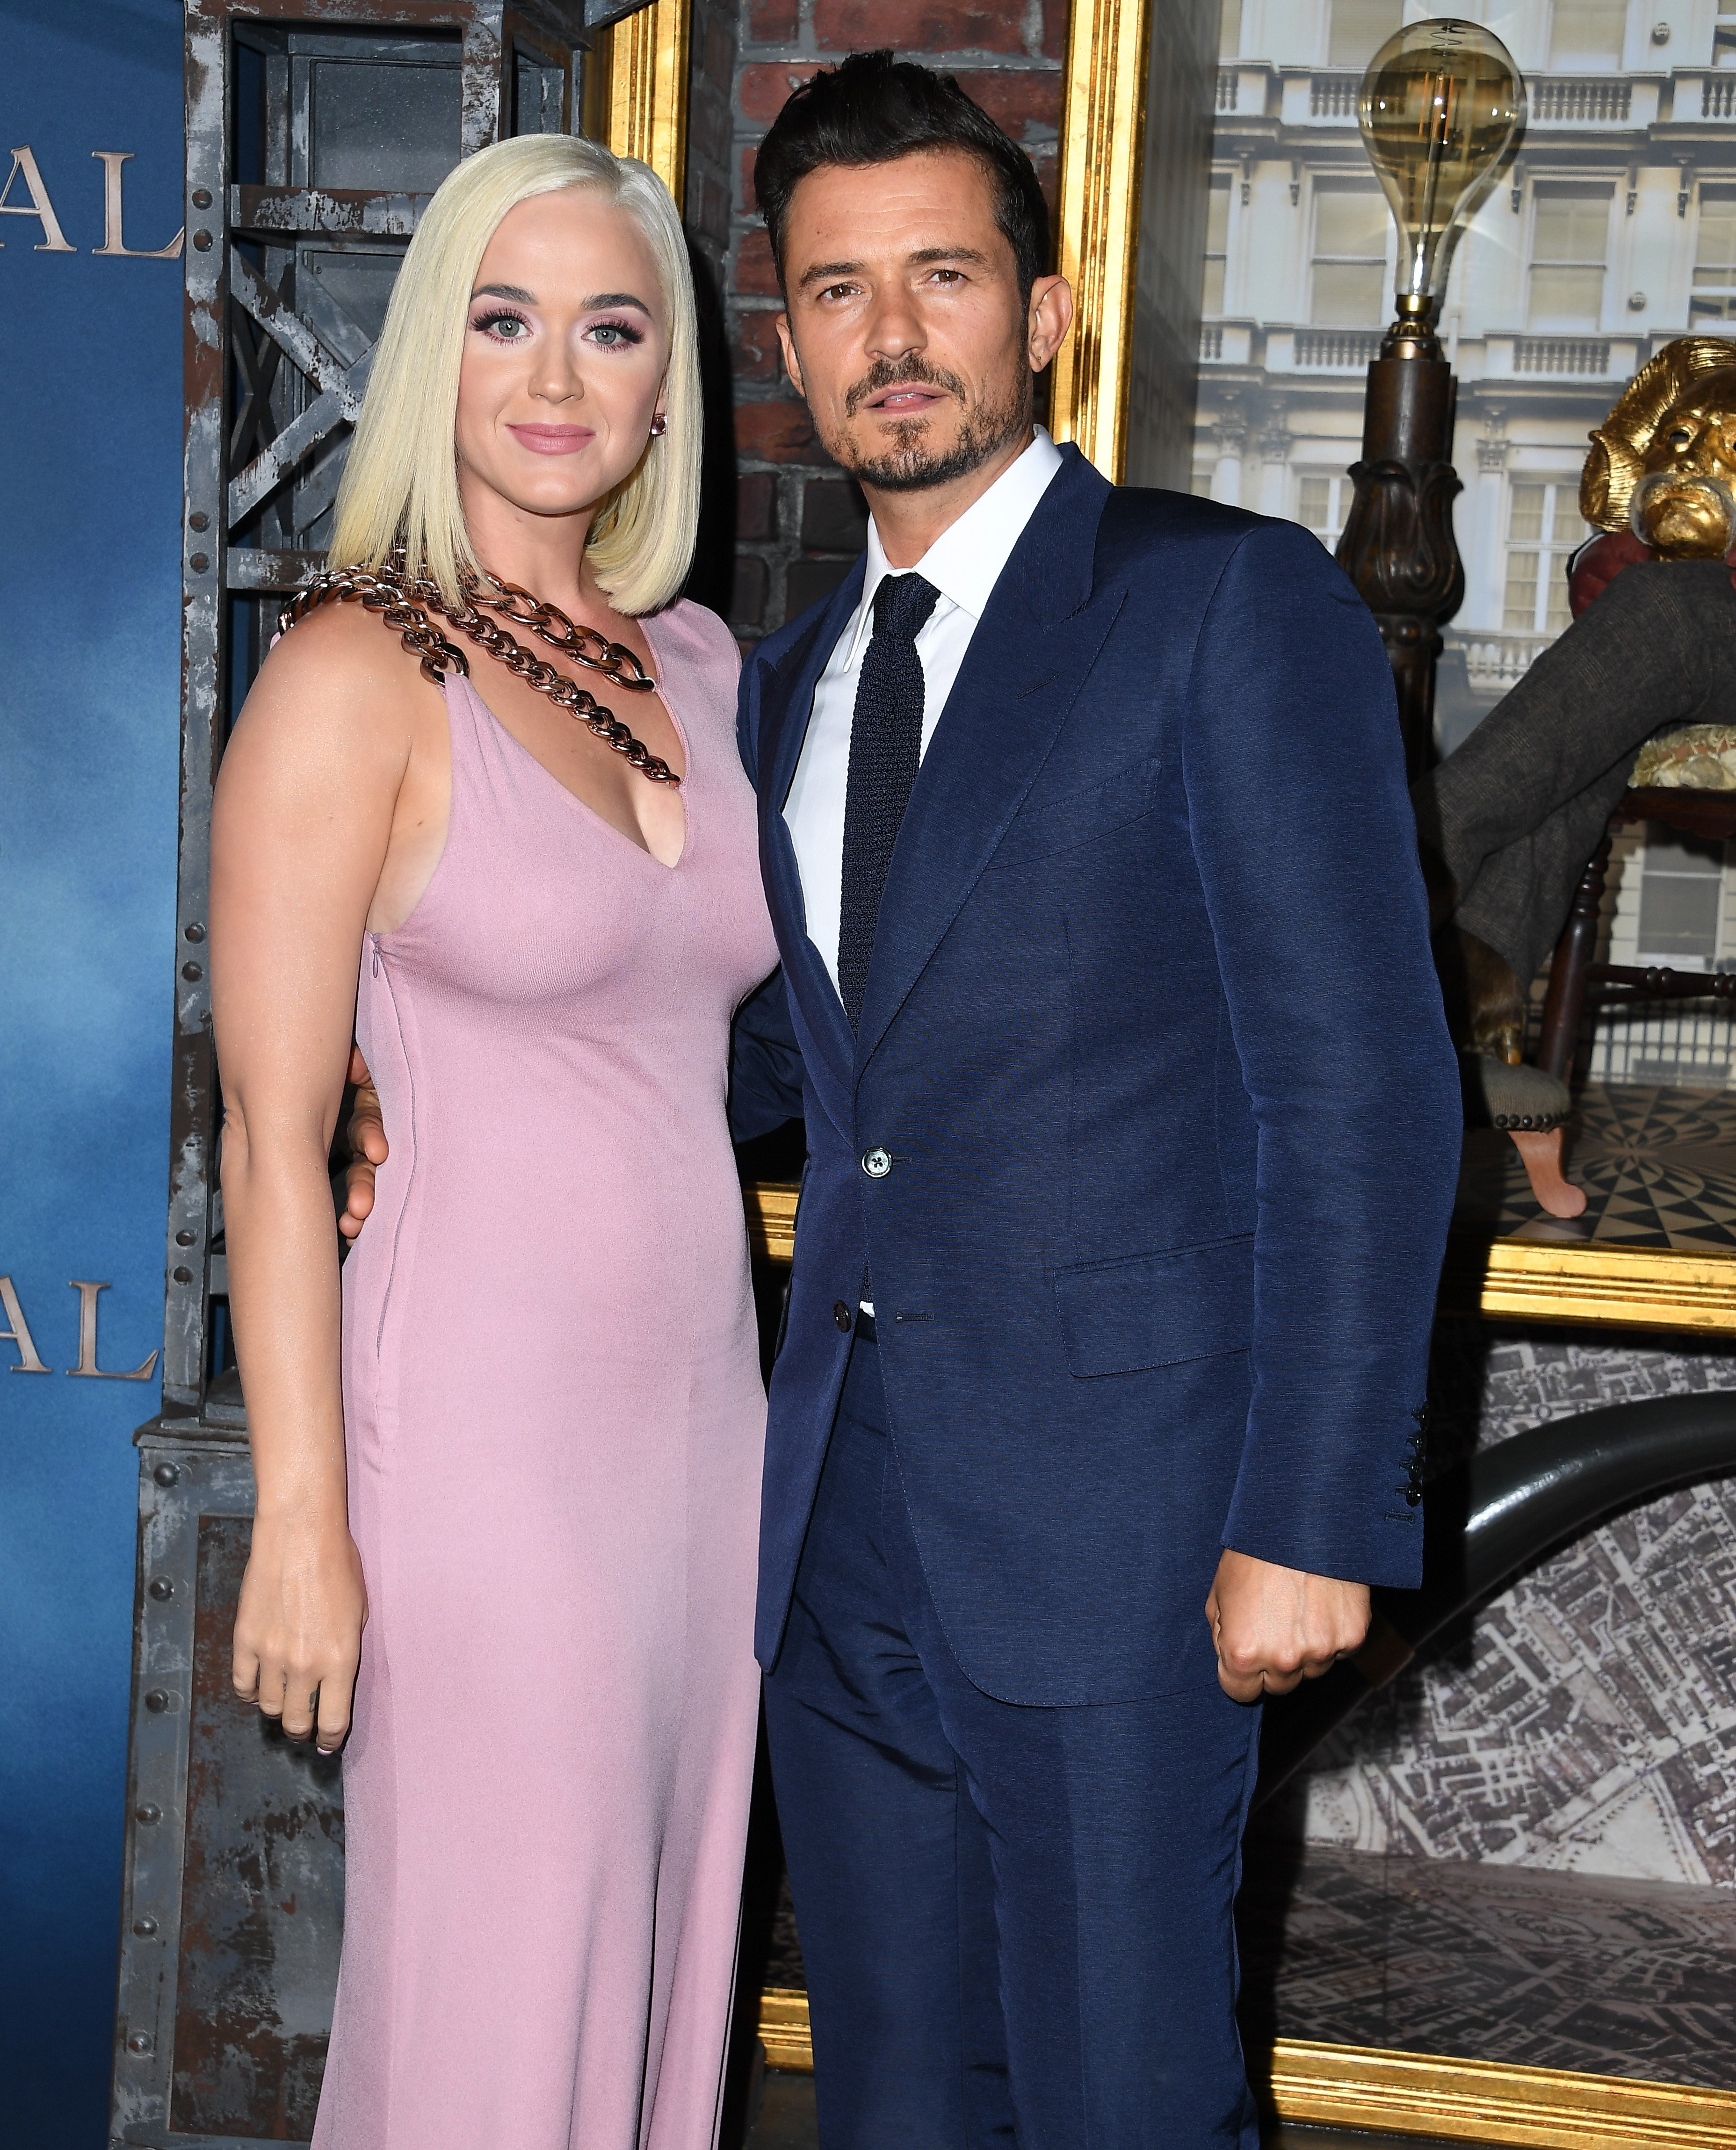 """Katy Perry and Orlando Bloom at the Los Angeles premiere of """"Carnival Row"""" on August 21, 2019, in Hollywood, California 